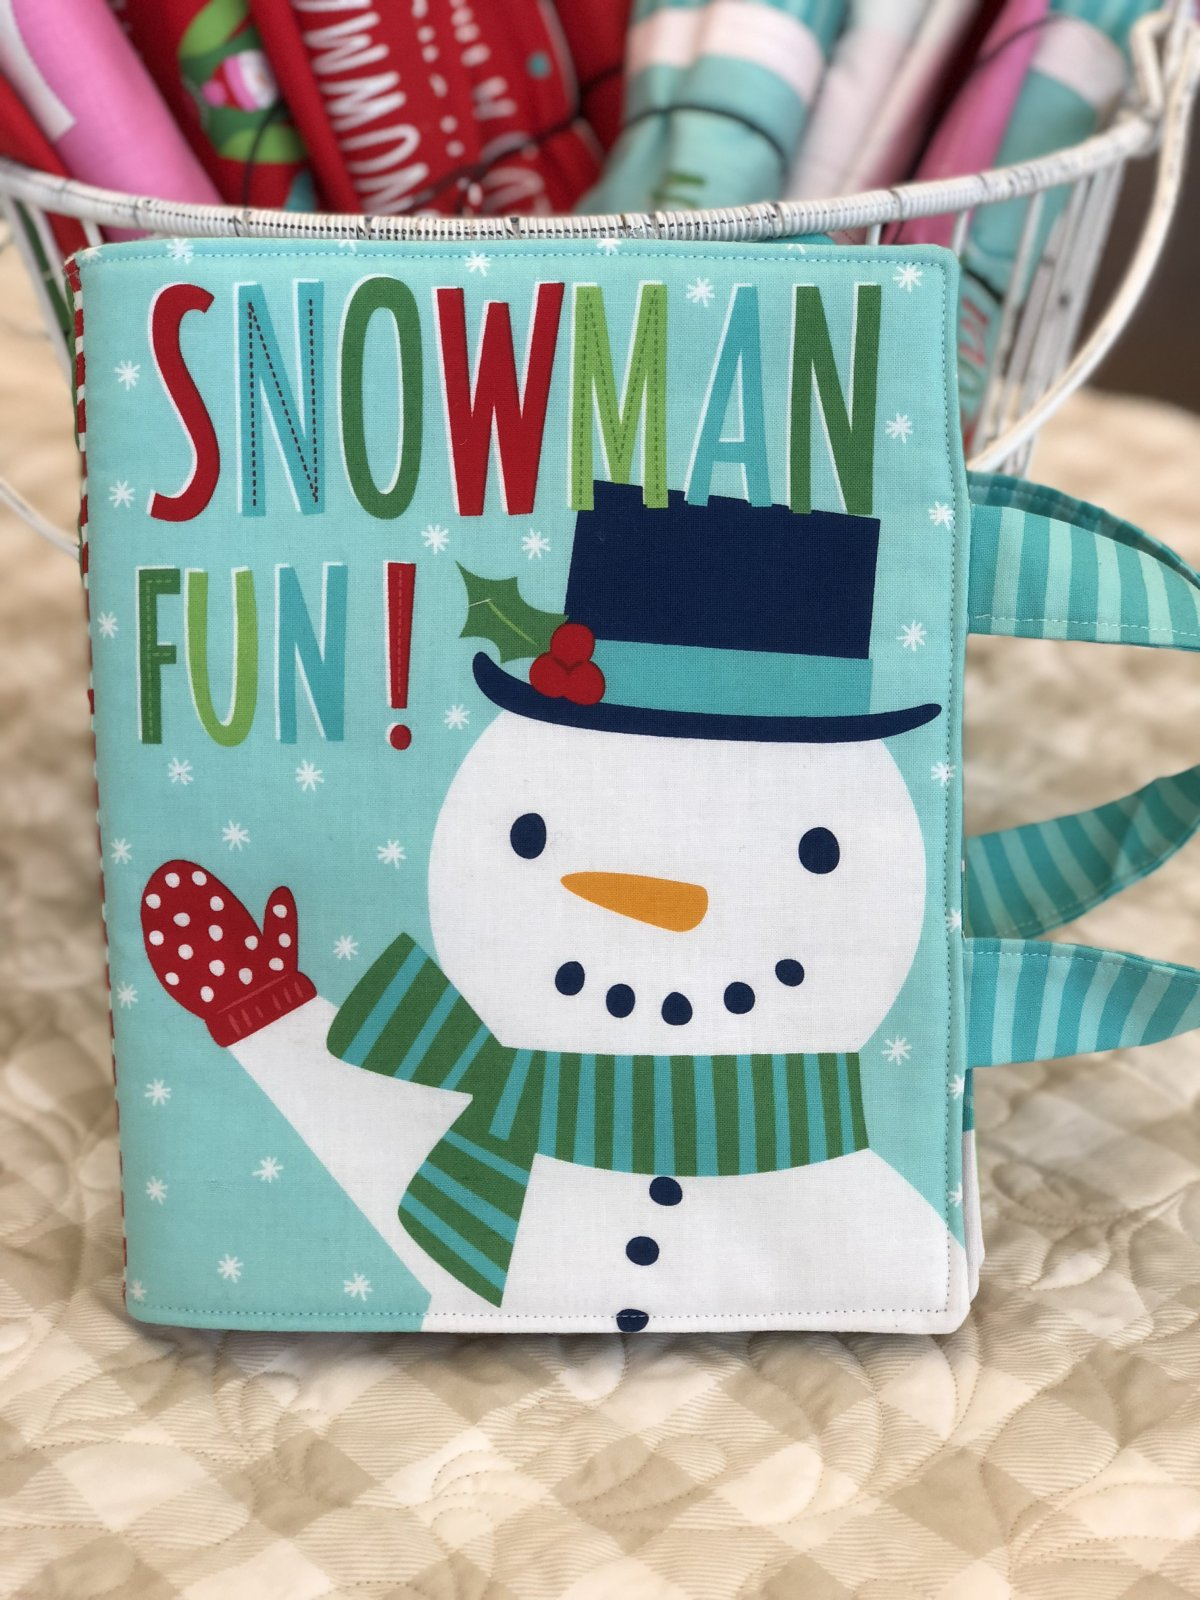 Snowman Fun Book - Snow Day Panel